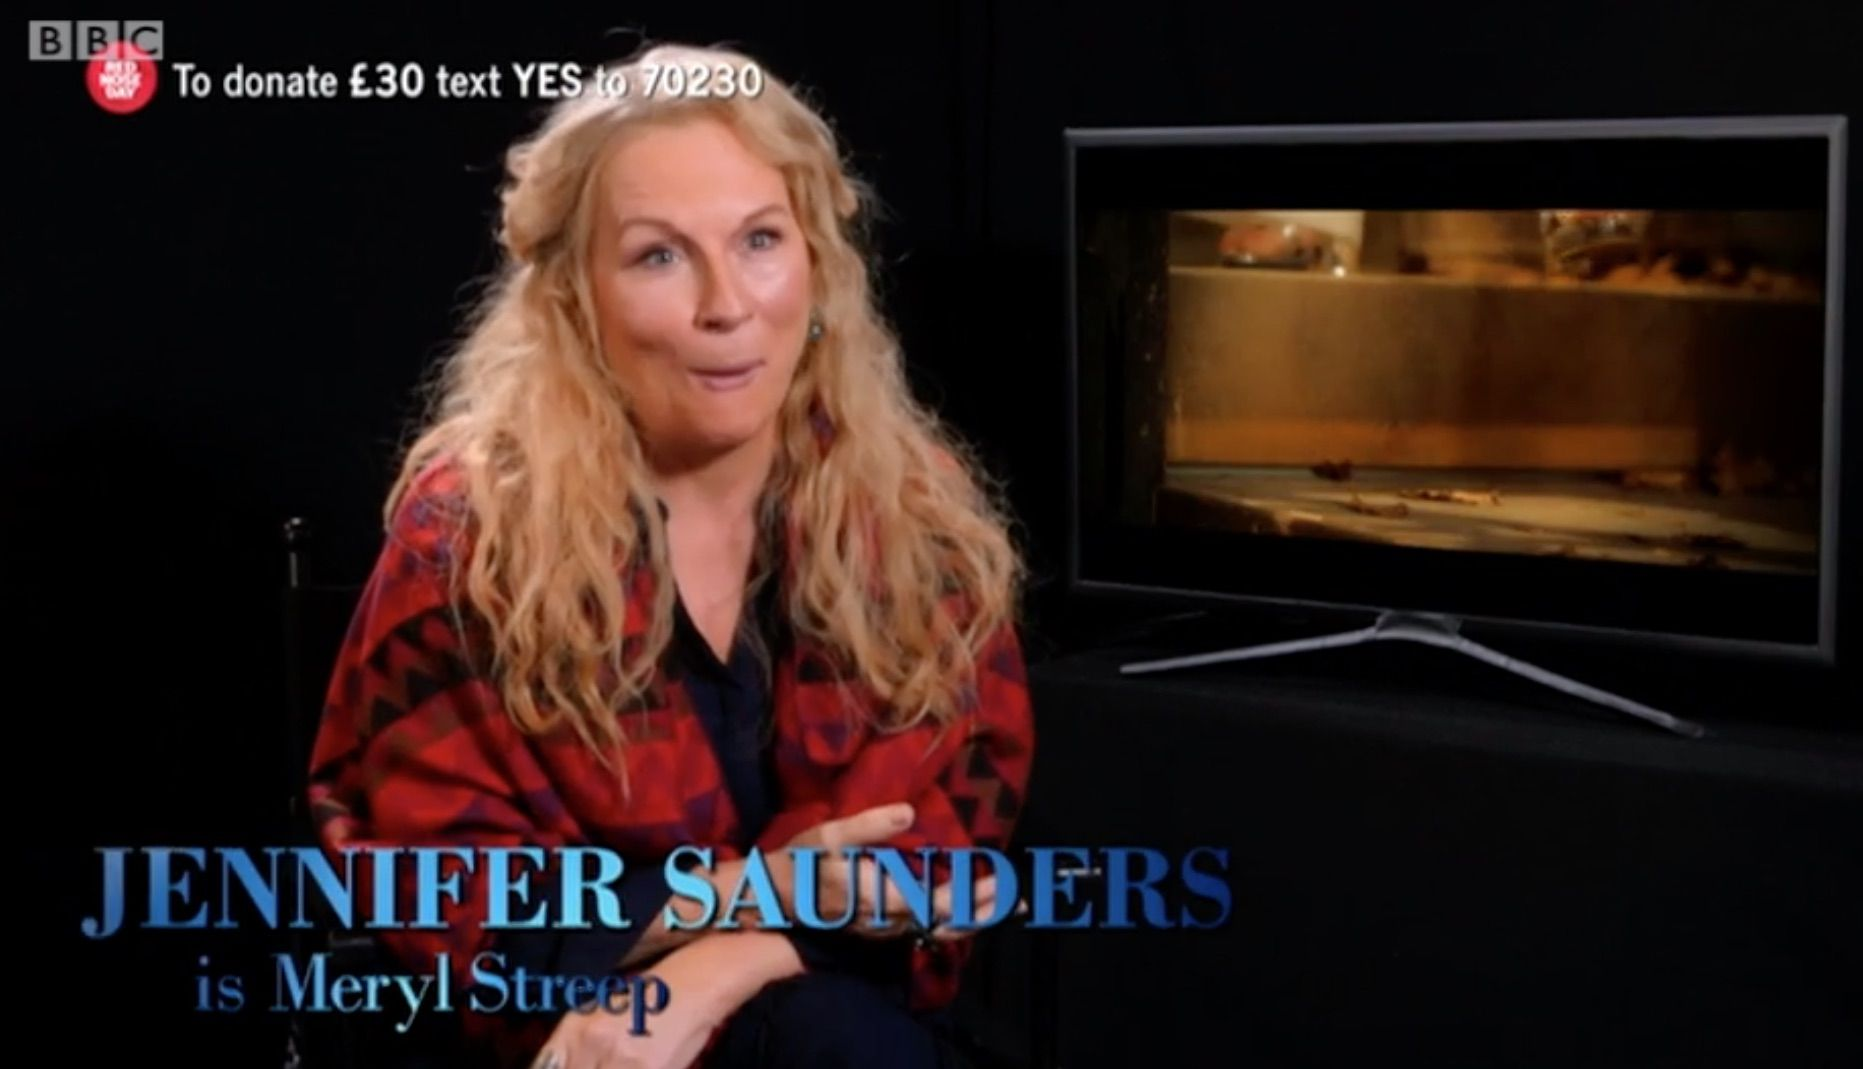 Jennifer Saunders as Meryl Streep